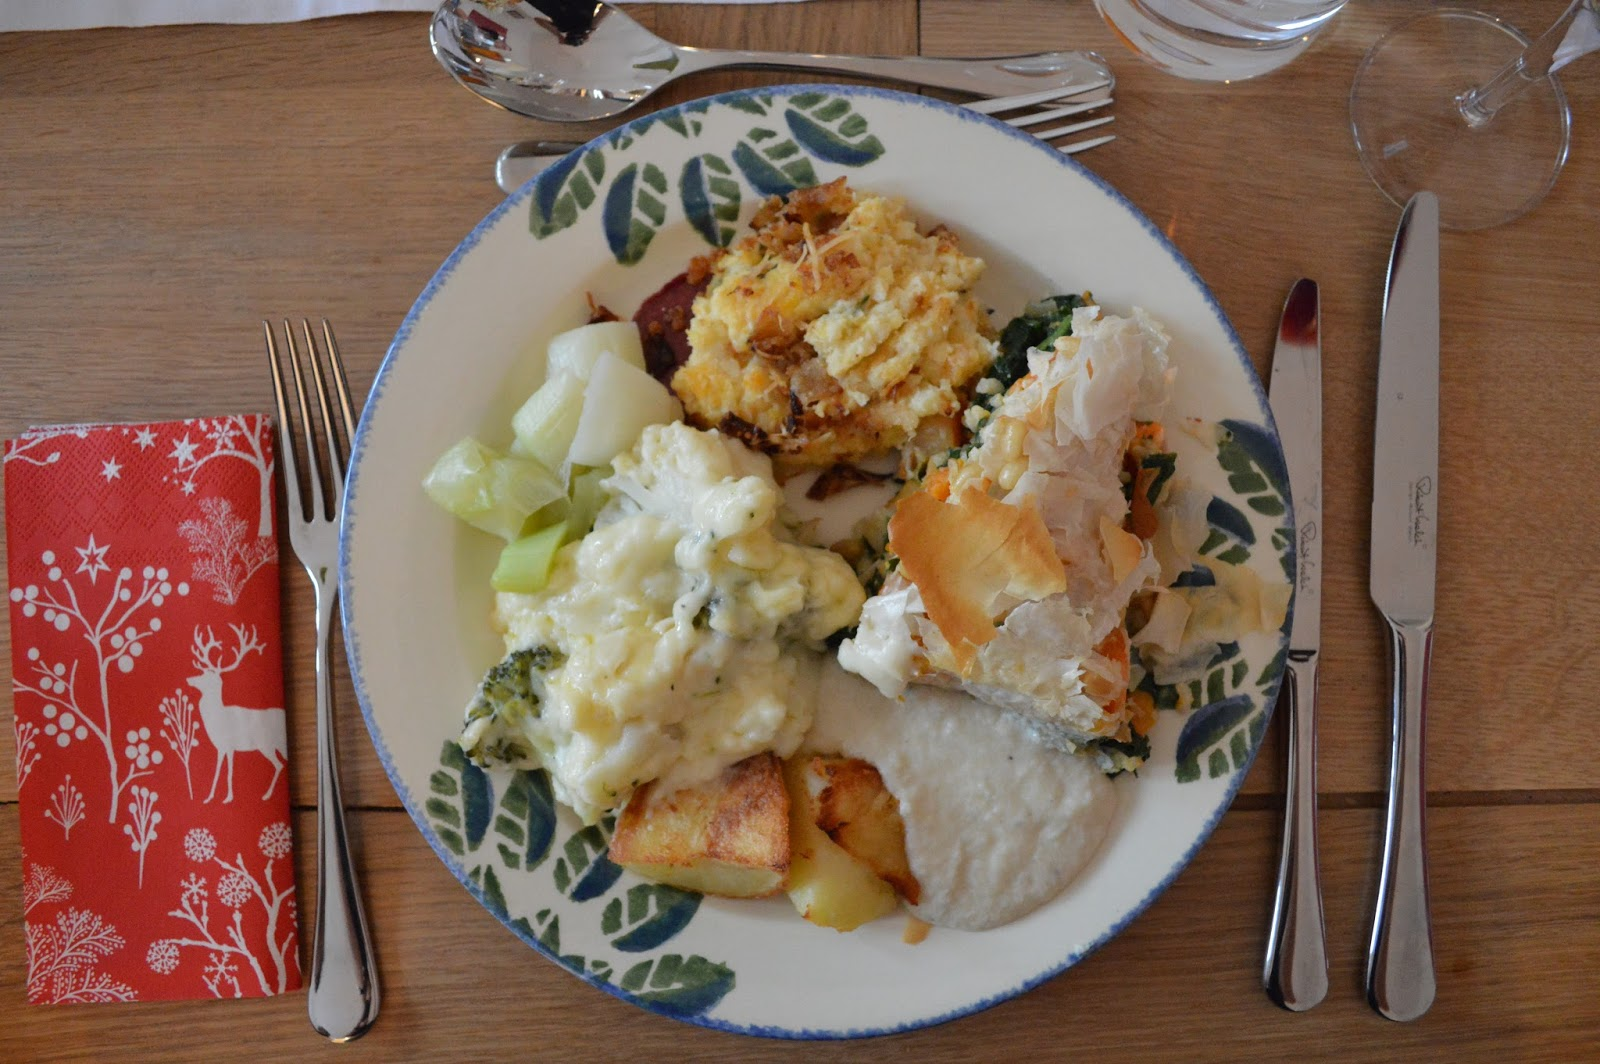 Best of Christmas 2015 - what to eat at Christmas